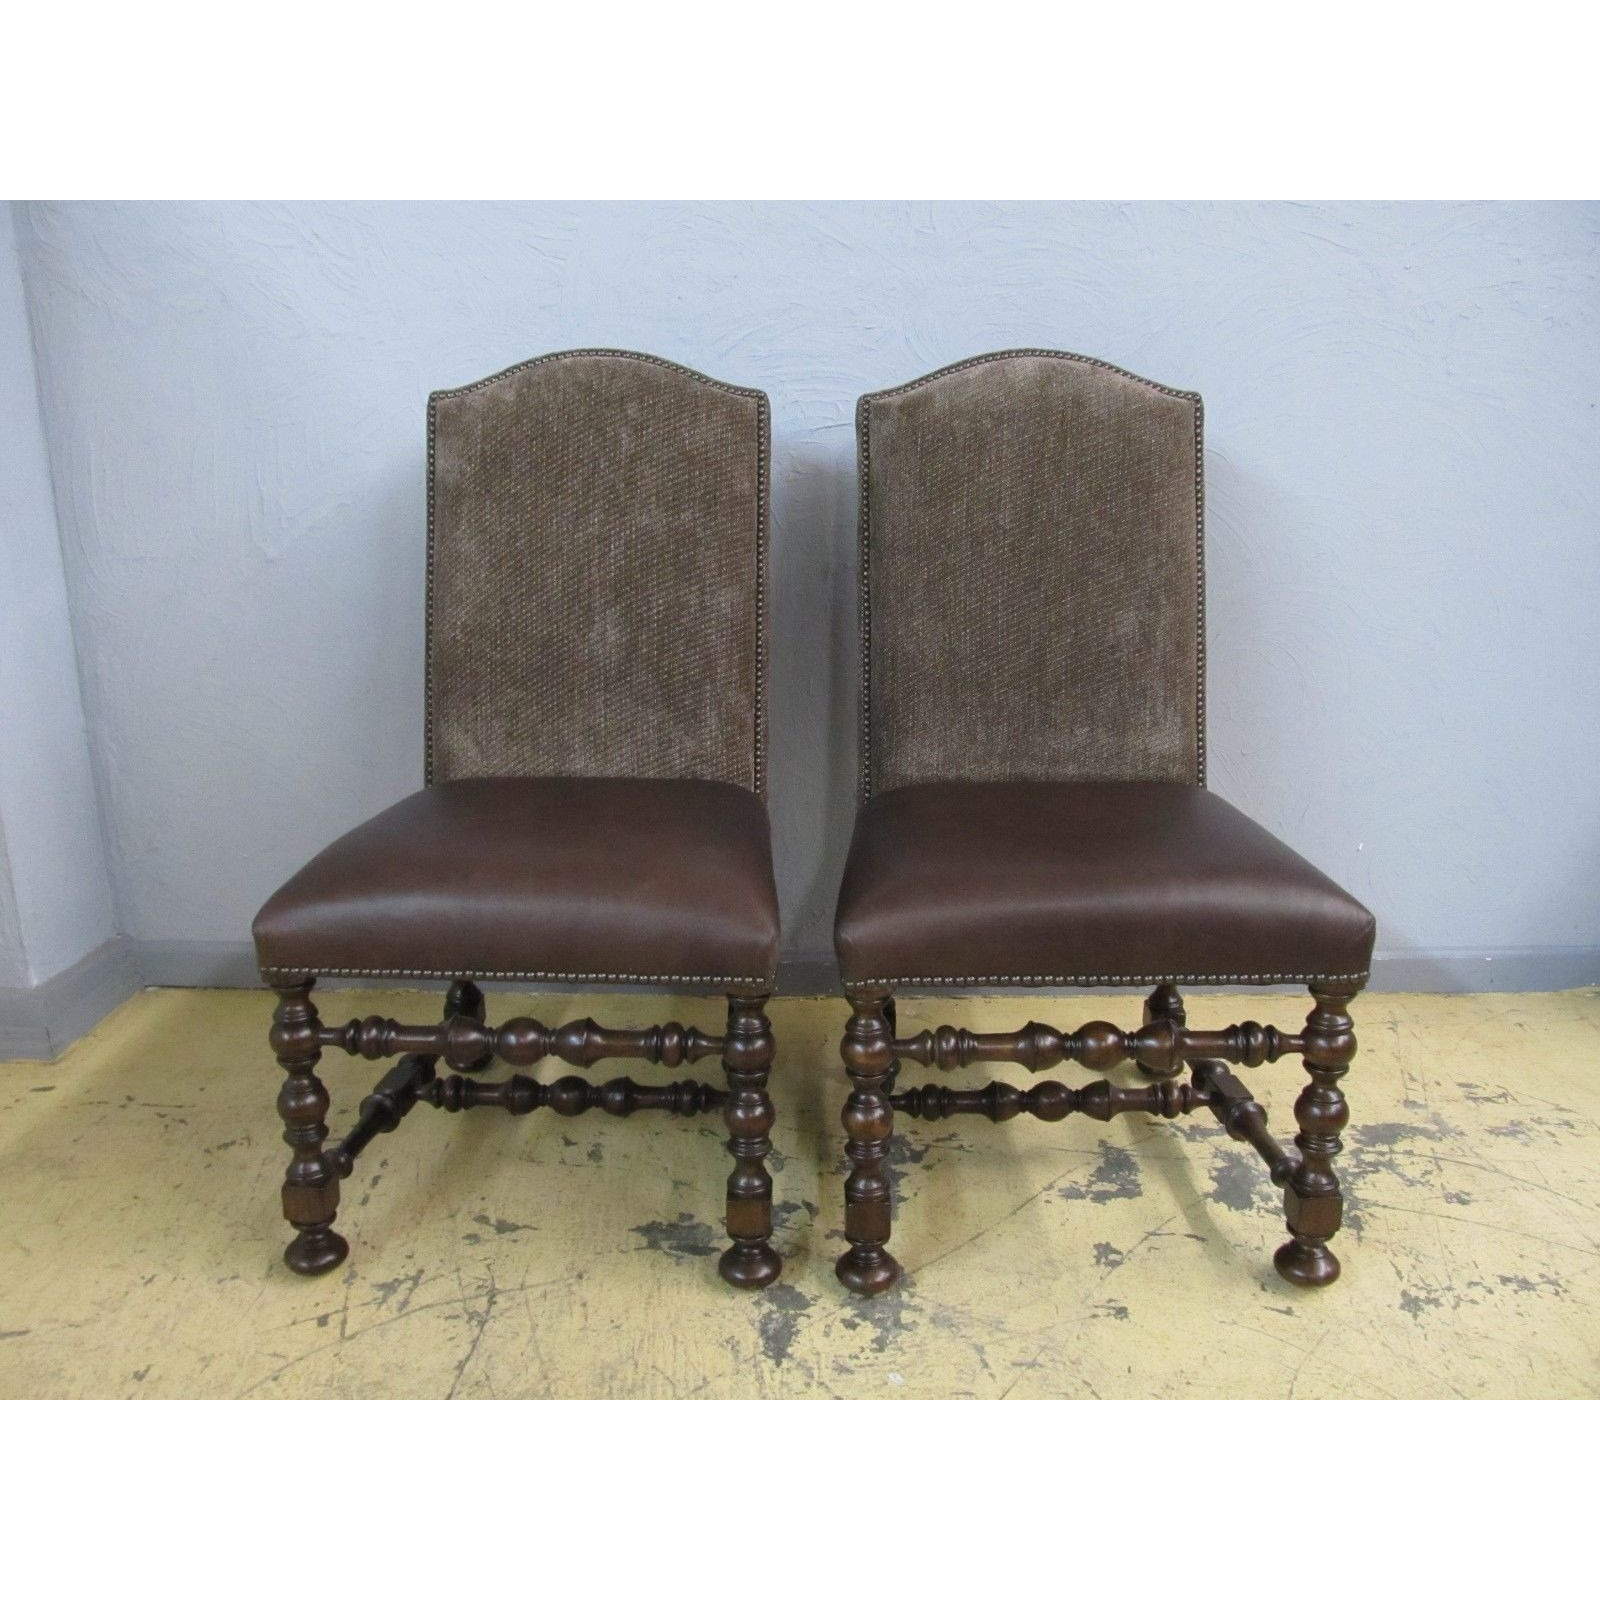 2 Thomasville Ernest Hemingway Maestro Upholstered Side Dining Chairs  84421 891   $999.00